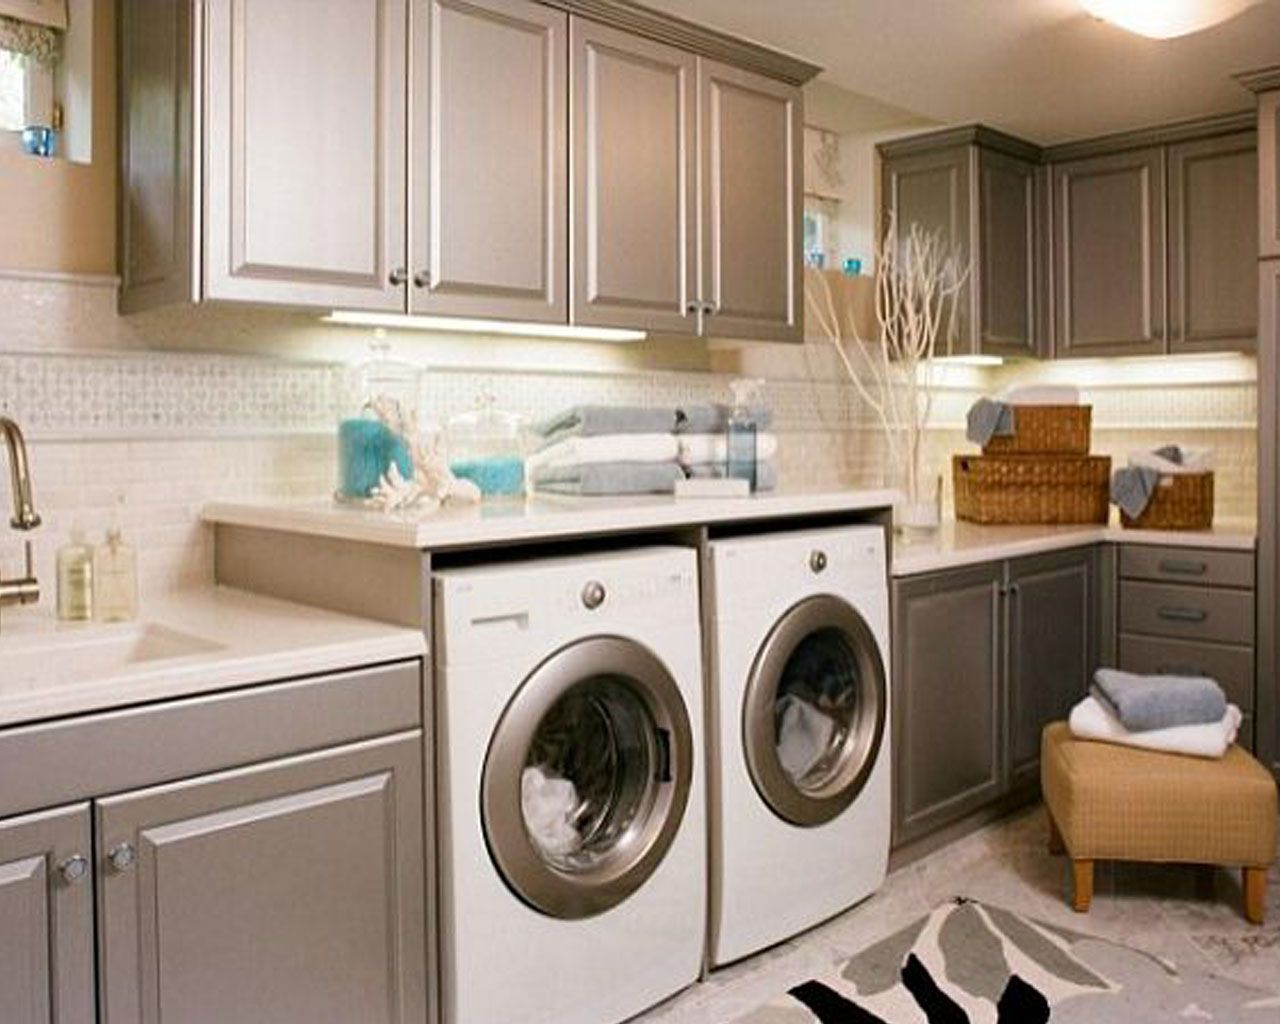 Laundry Room Countertop Ideas Cabinet Set With Wood Panel